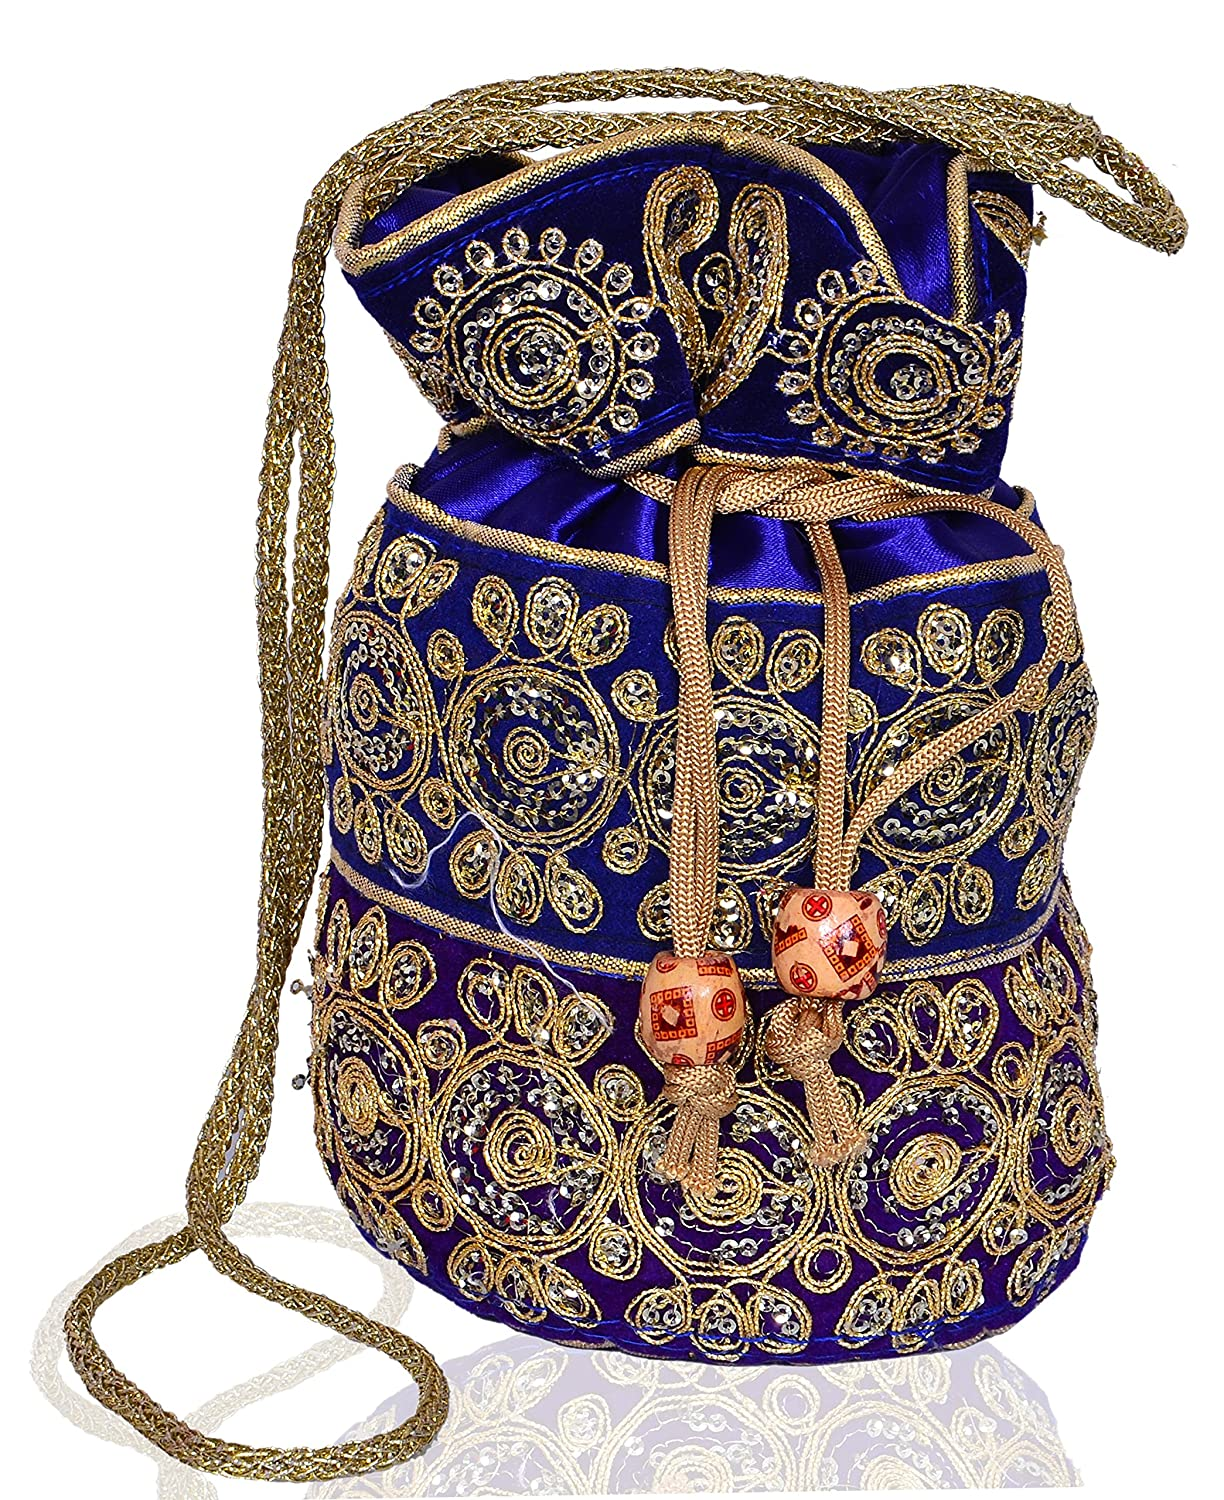 Vintage & Retro Handbags, Purses, Wallets, Bags Purpledip Potli Bag (Clutch Drawstring Purse) For Women With Intricate Gold Thread & Sequin Embroidery Work $12.99 AT vintagedancer.com